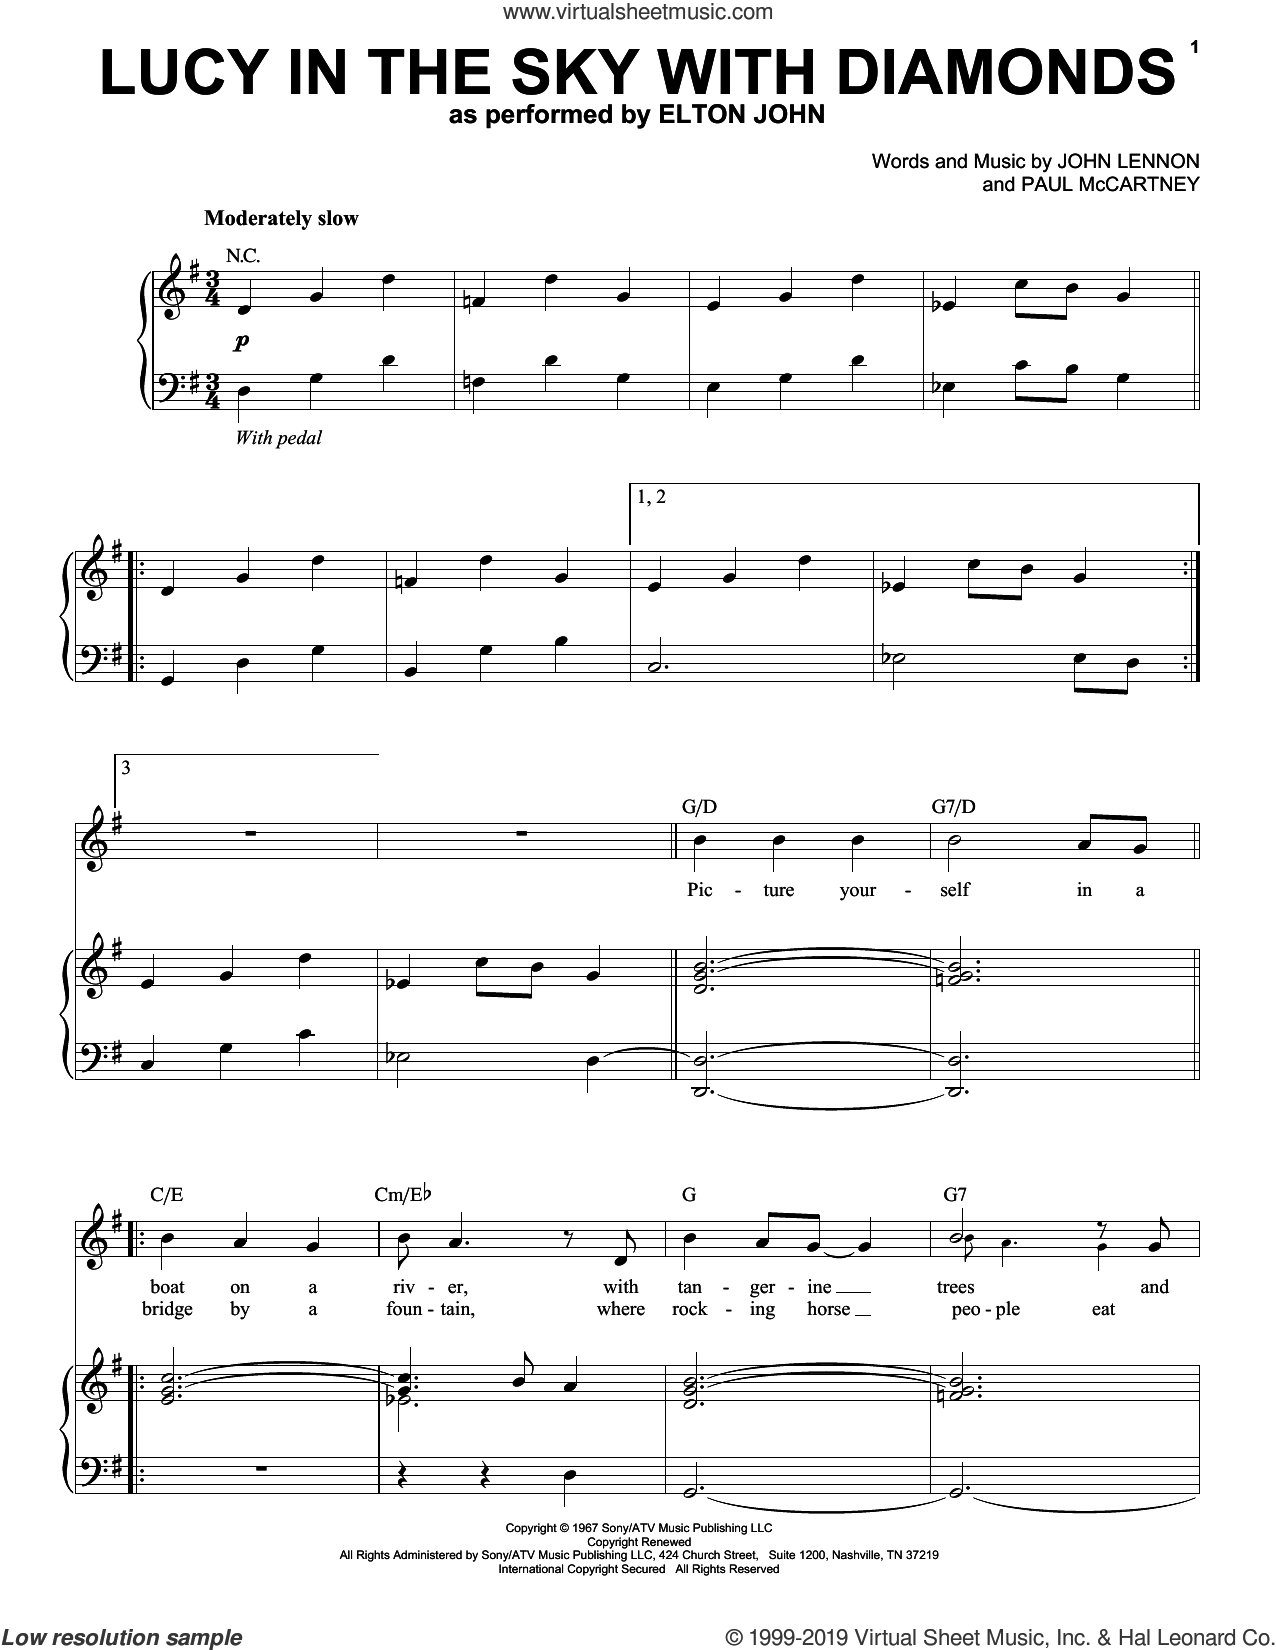 Lucy In The Sky With Diamonds sheet music for voice and piano by Elton John, The Beatles, John Lennon and Paul McCartney, intermediate skill level